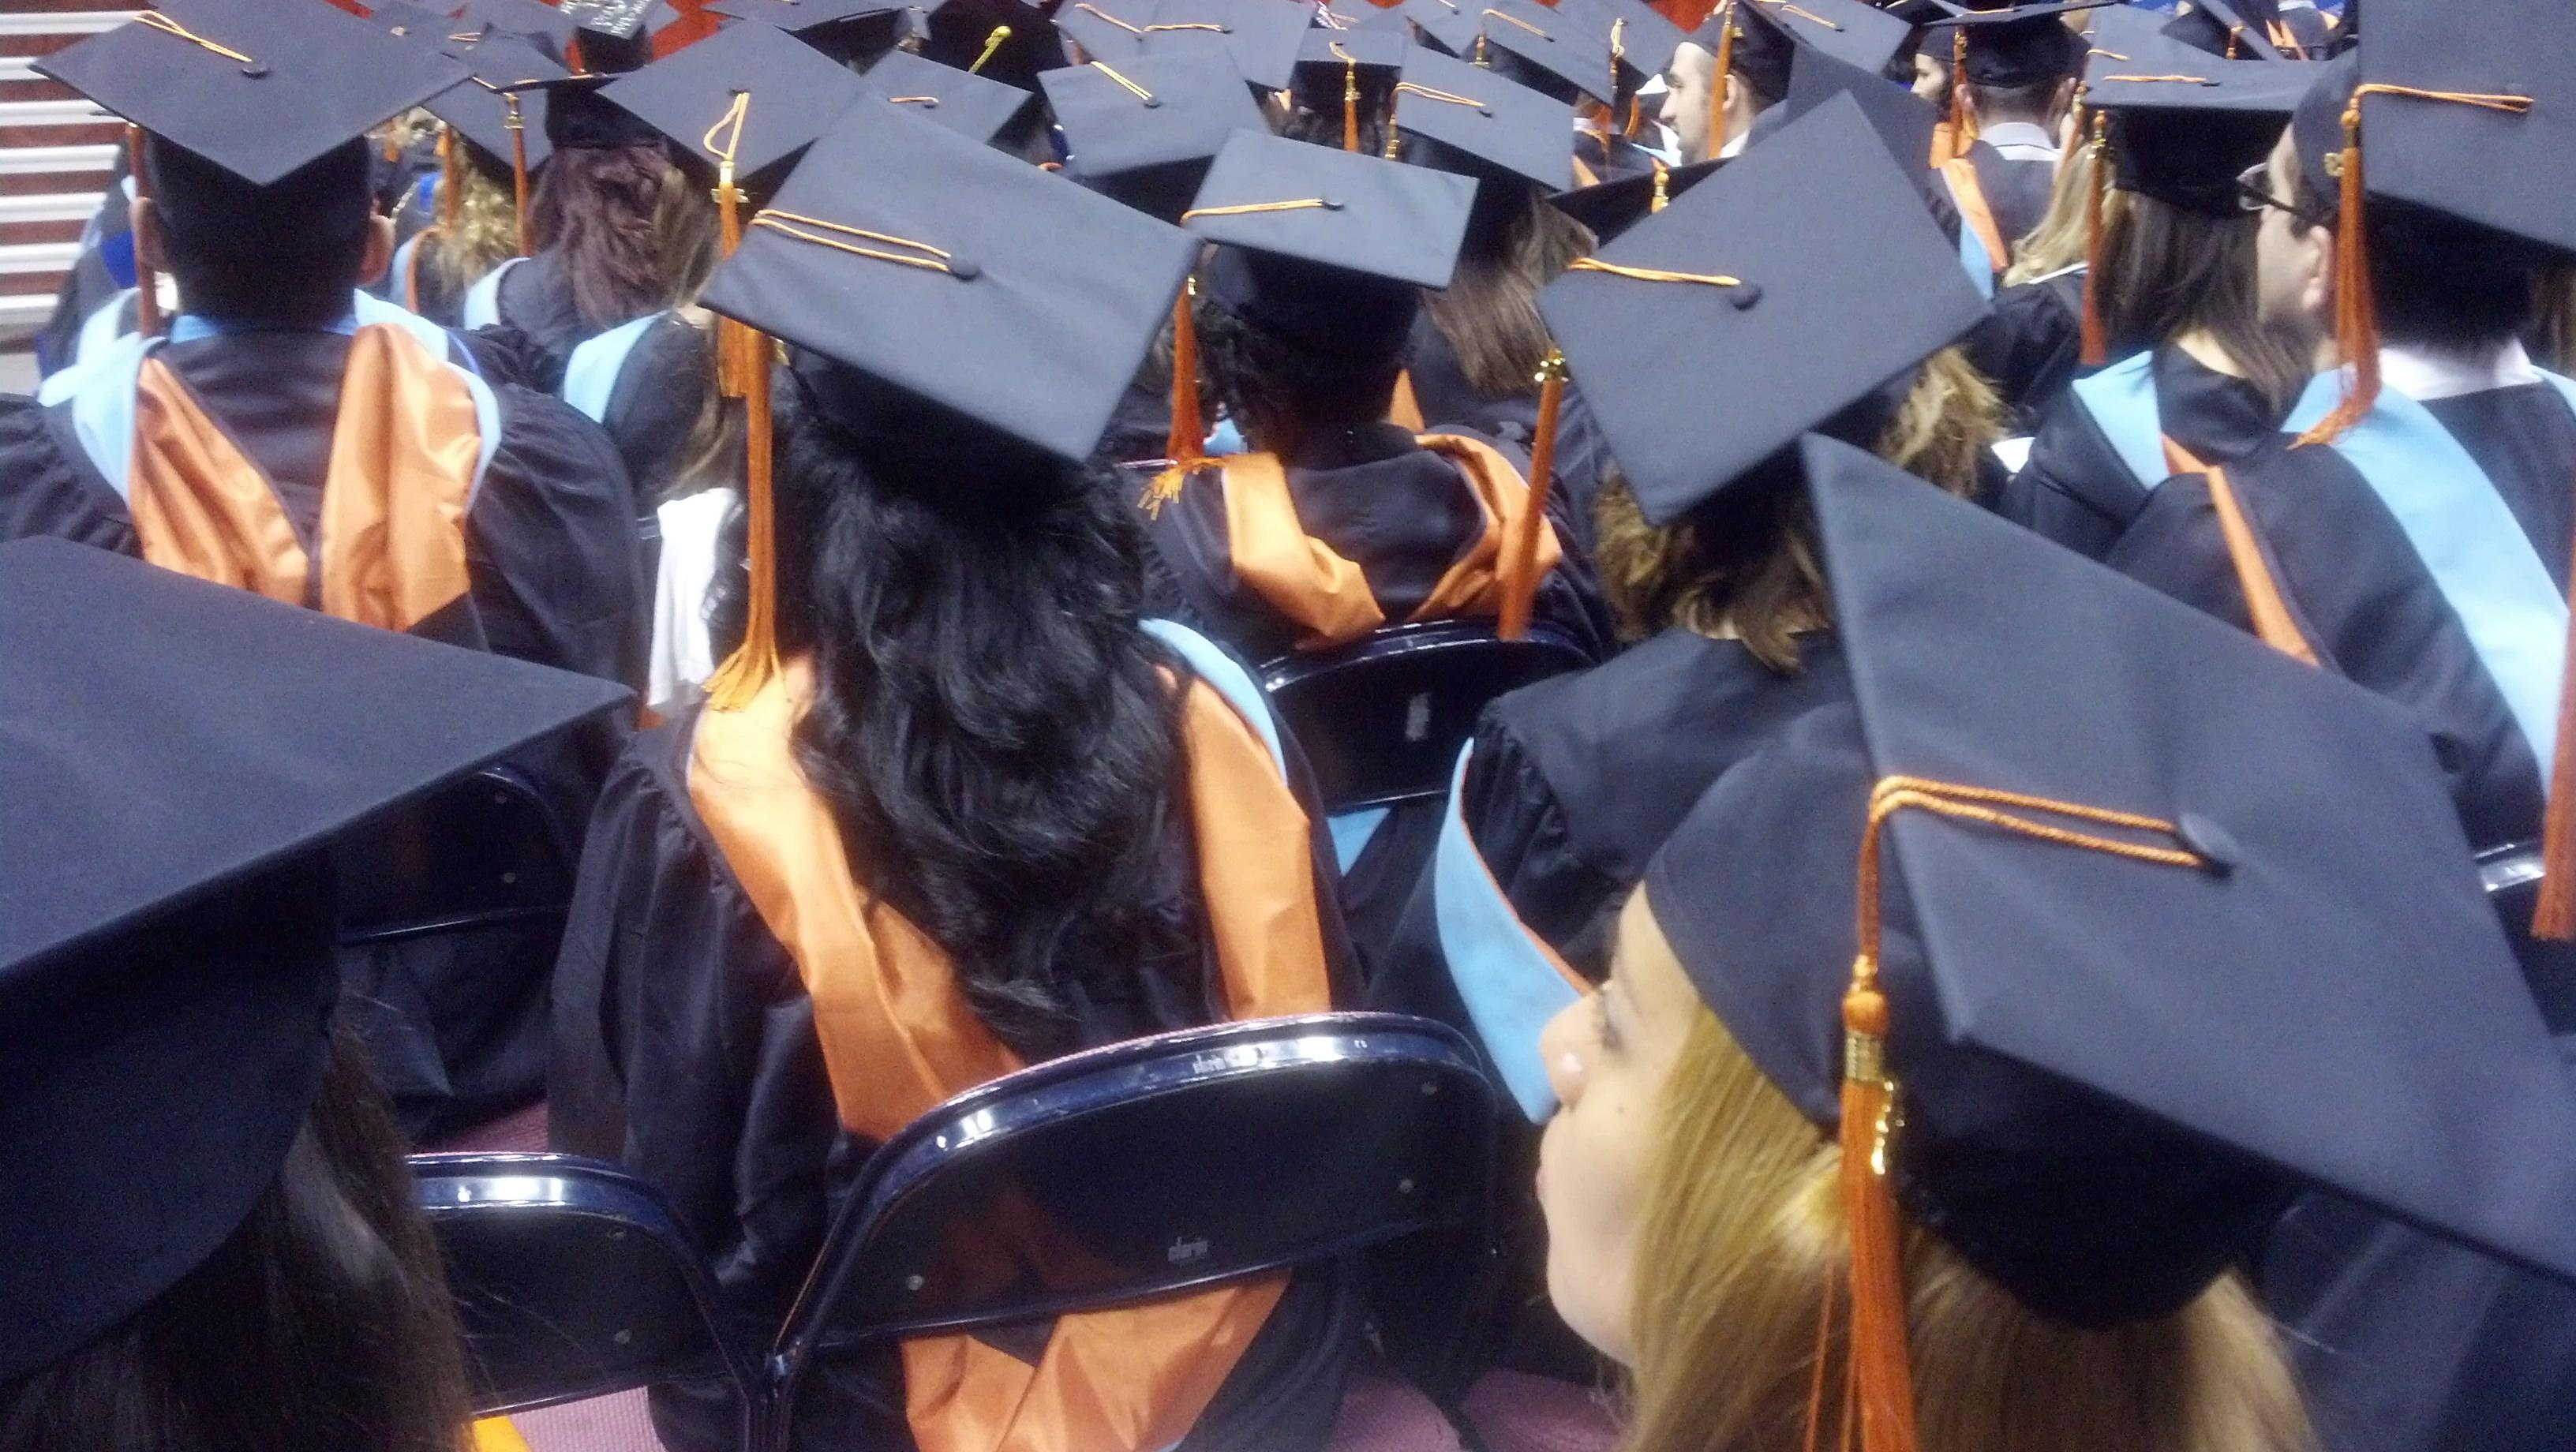 Graduates sit at ceremony